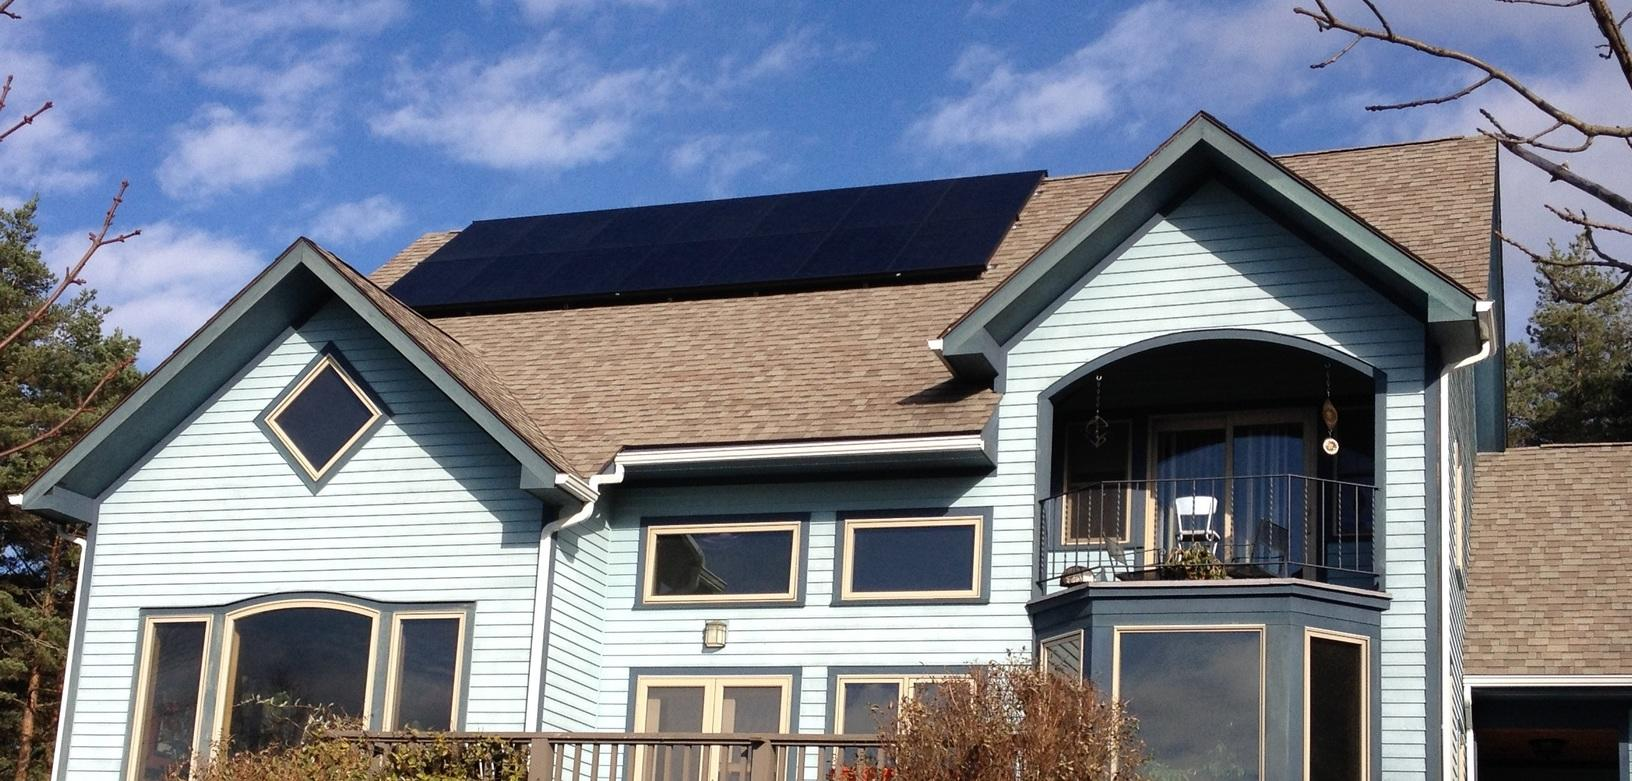 Solar Installation in Ithaca, NY - After Photo